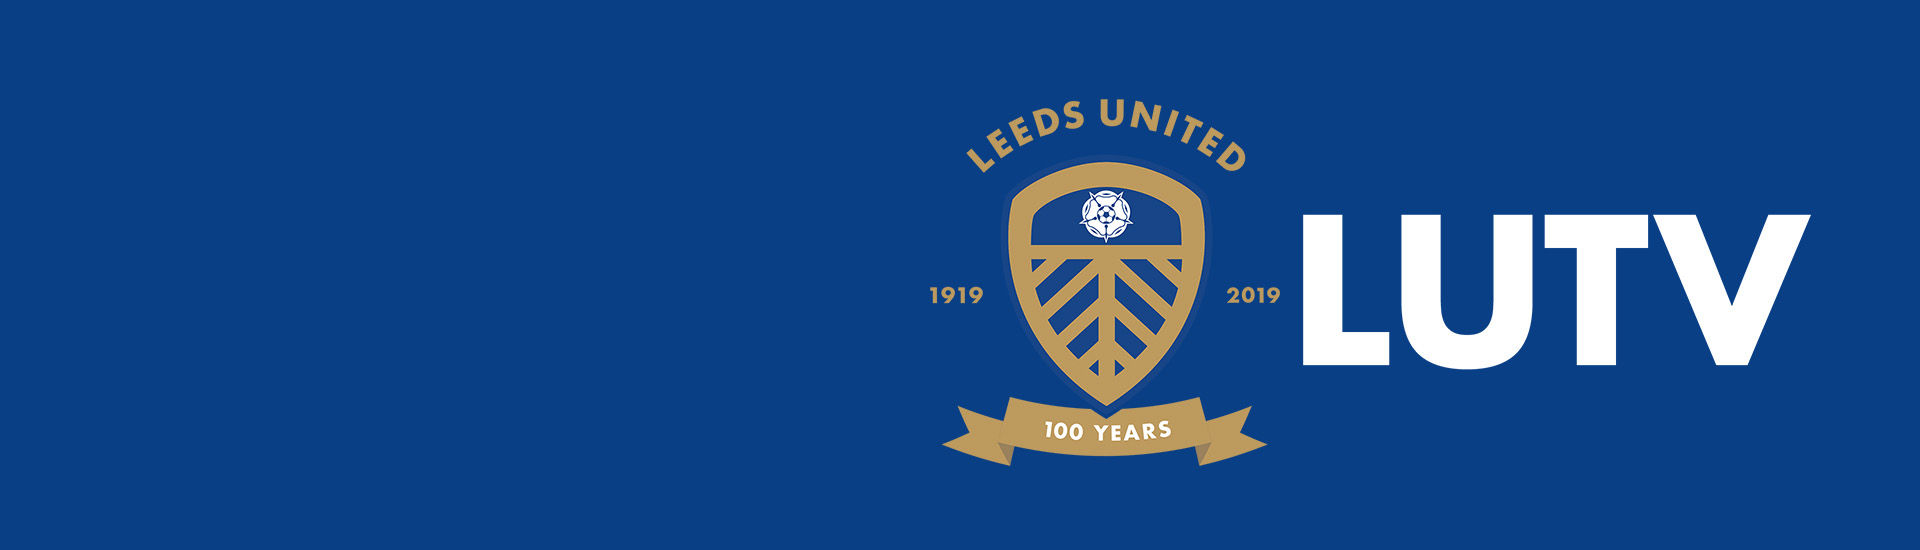 LUTV: The only place to watch Leeds United v Luton Town